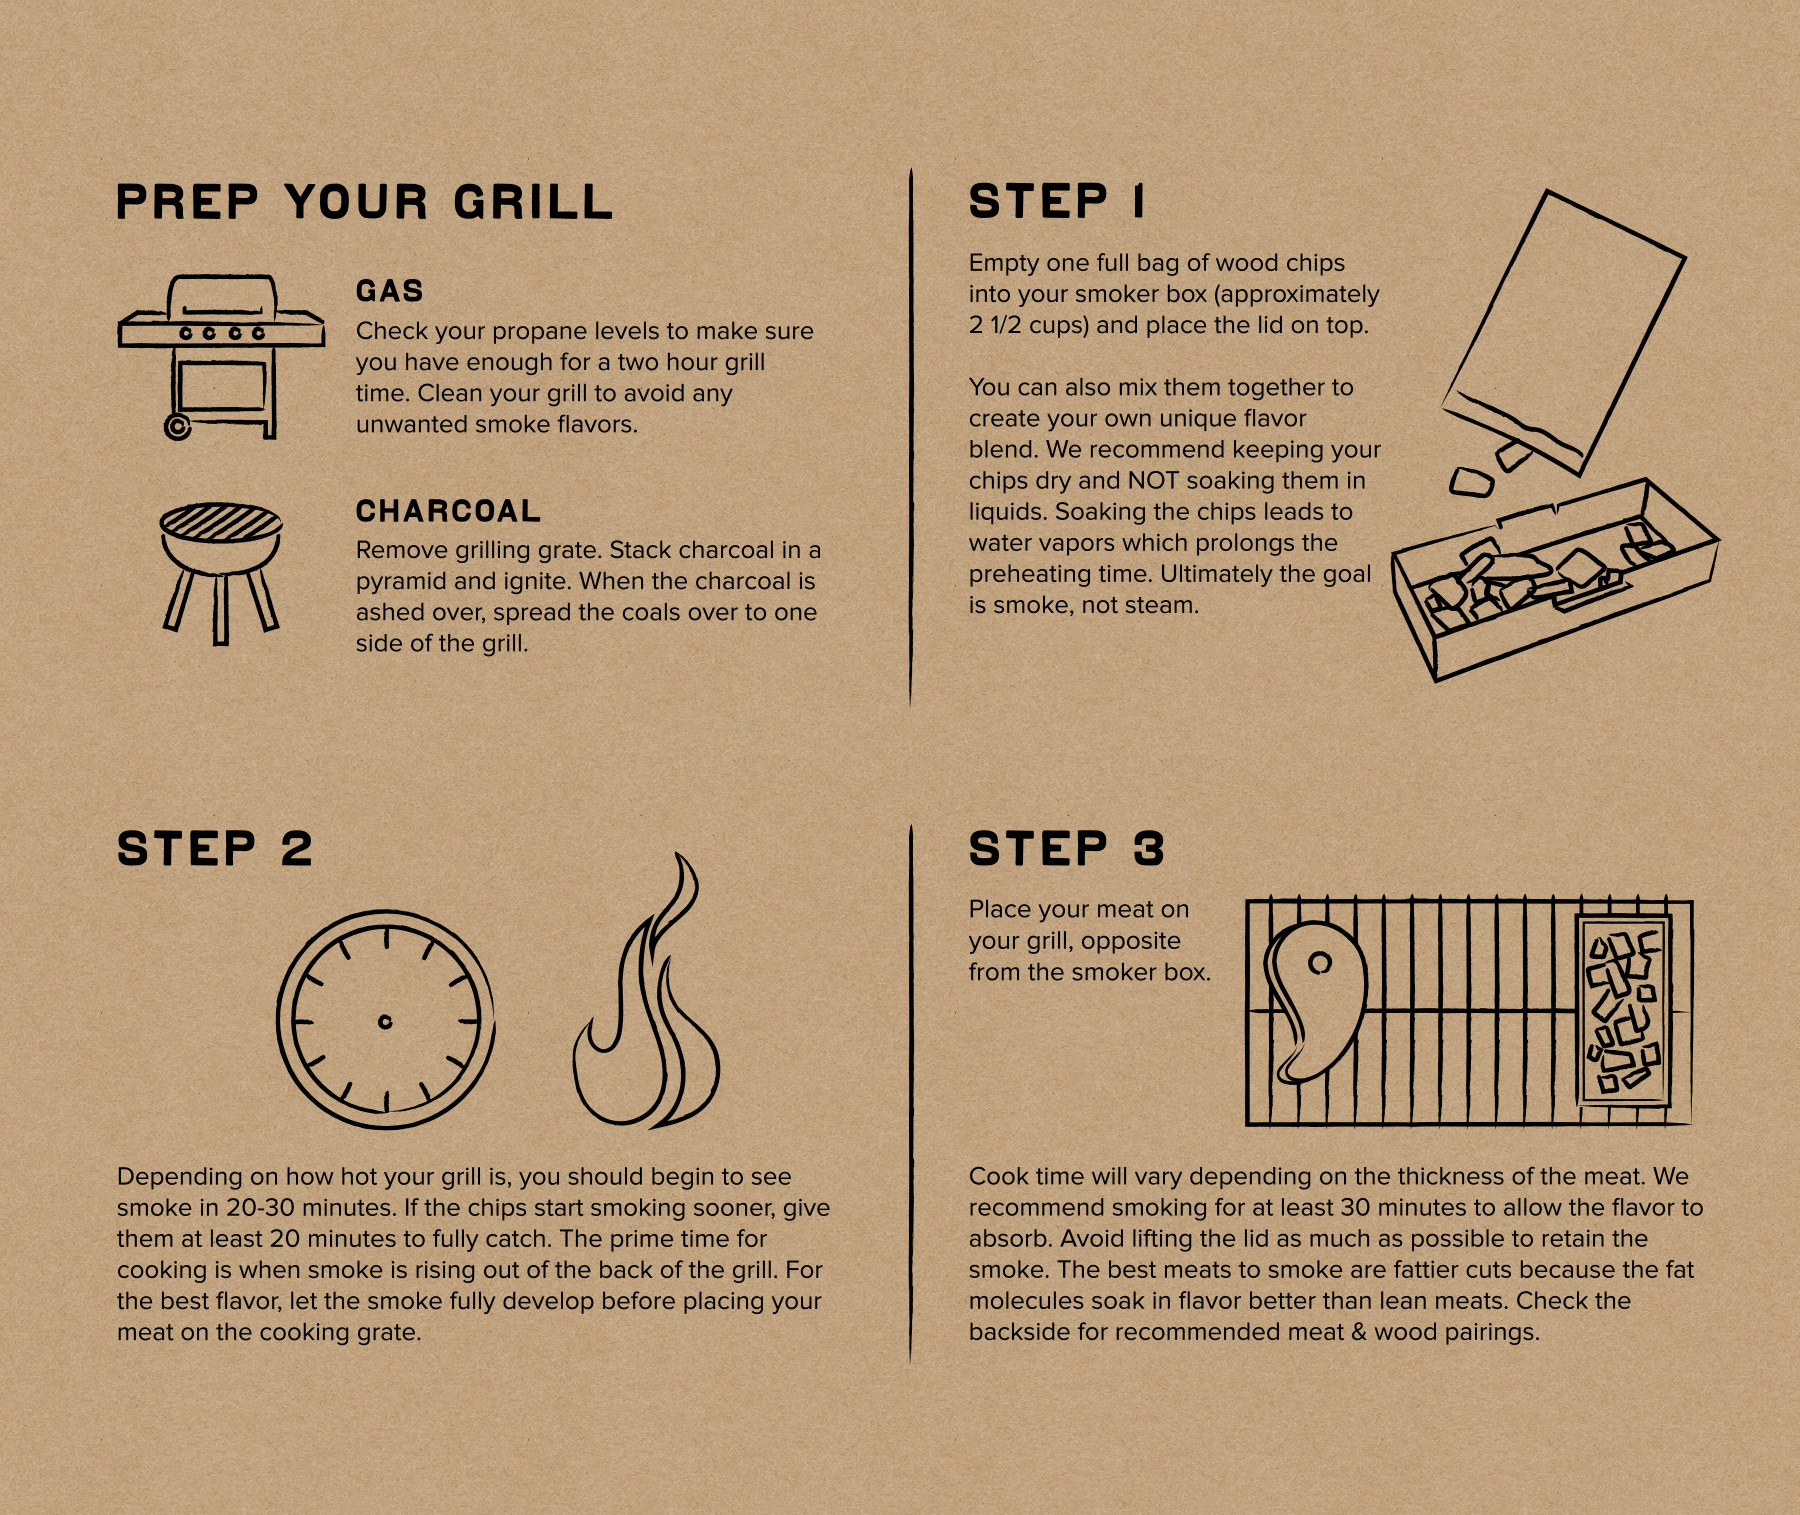 Grilling with smoking instructions and illustrations